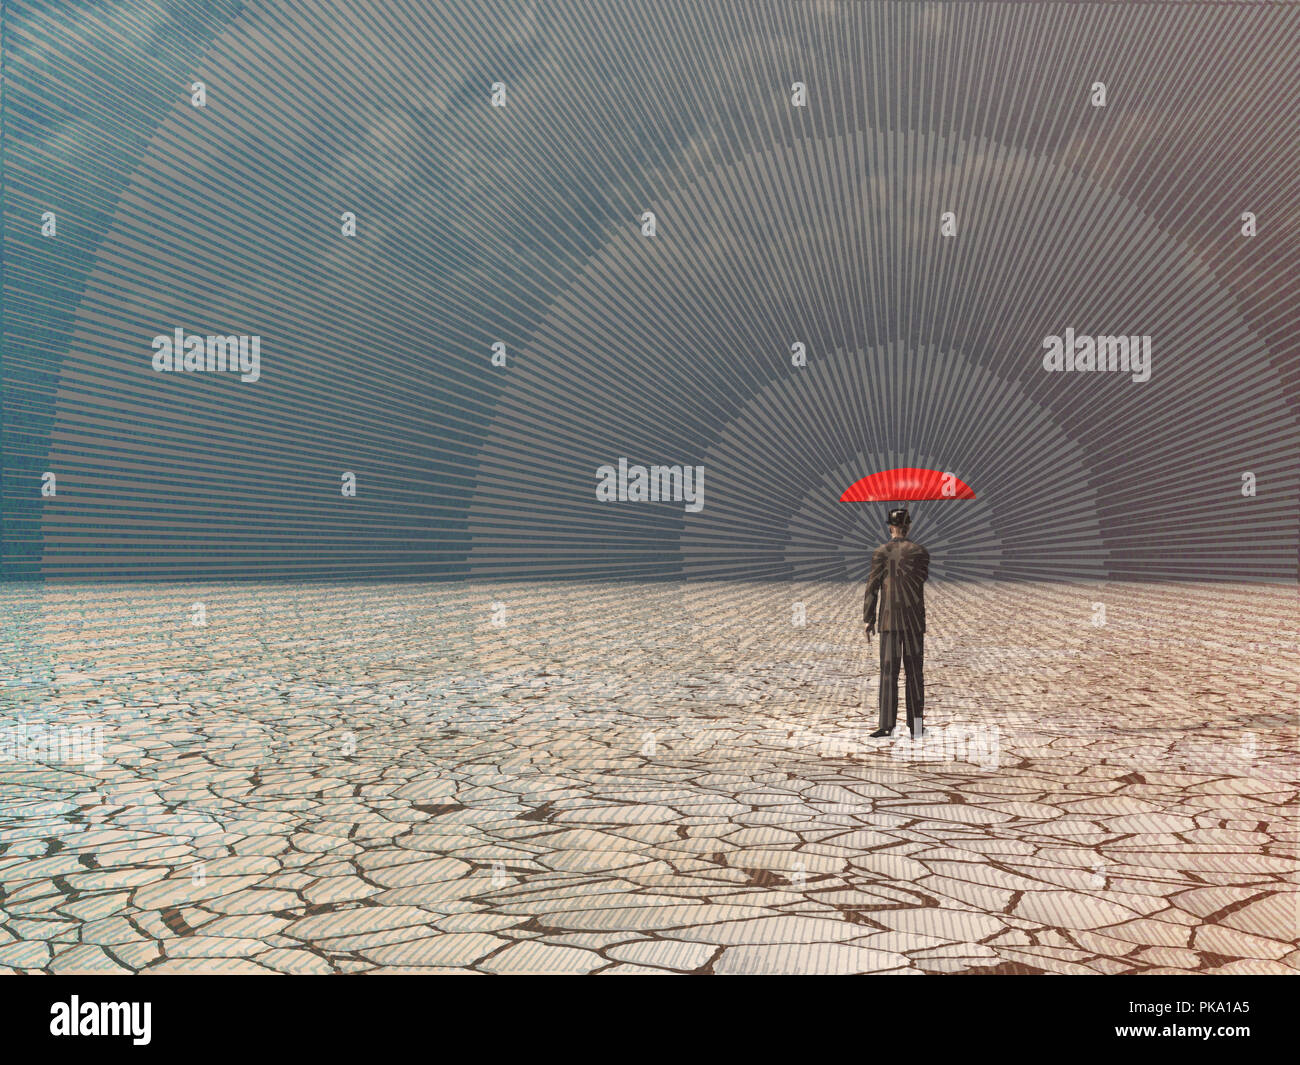 Surreal digital art. Man with red umbrella in dry land under gathering storm. - Stock Image